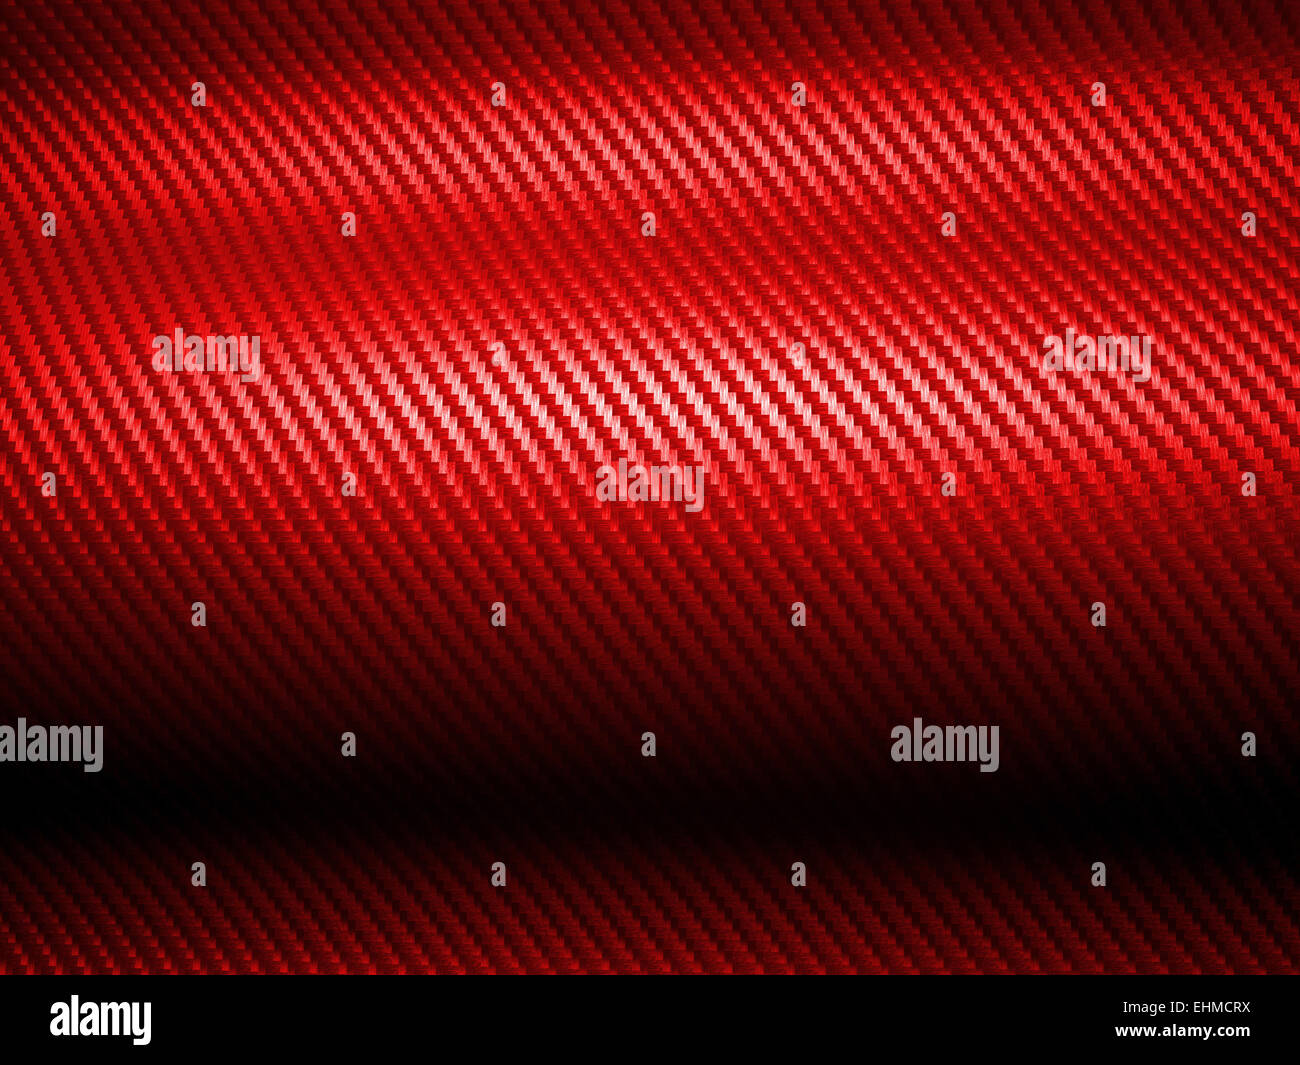 3d Image Of Red Carbon Fiber Texture Stock Photo, Royalty ...